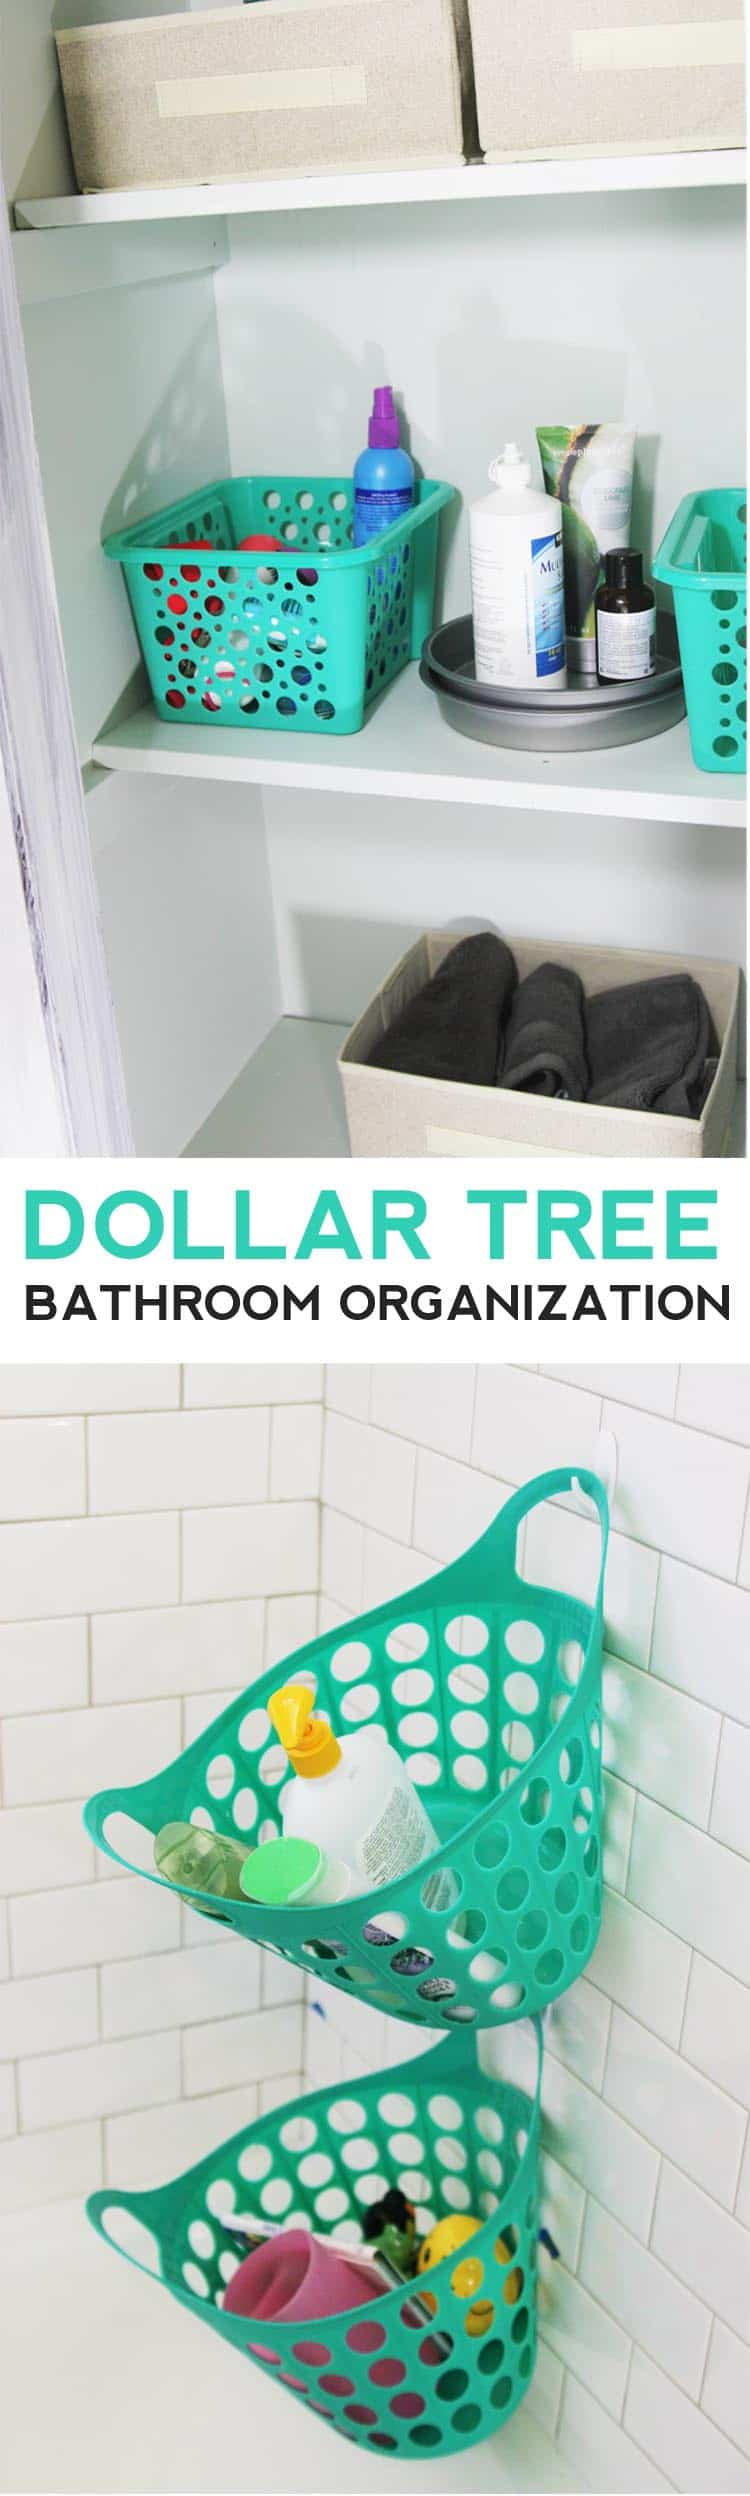 Completely organize your bathroom with stuff from Dollar Tree! This is the best post for bathroom organization tips on a budget!